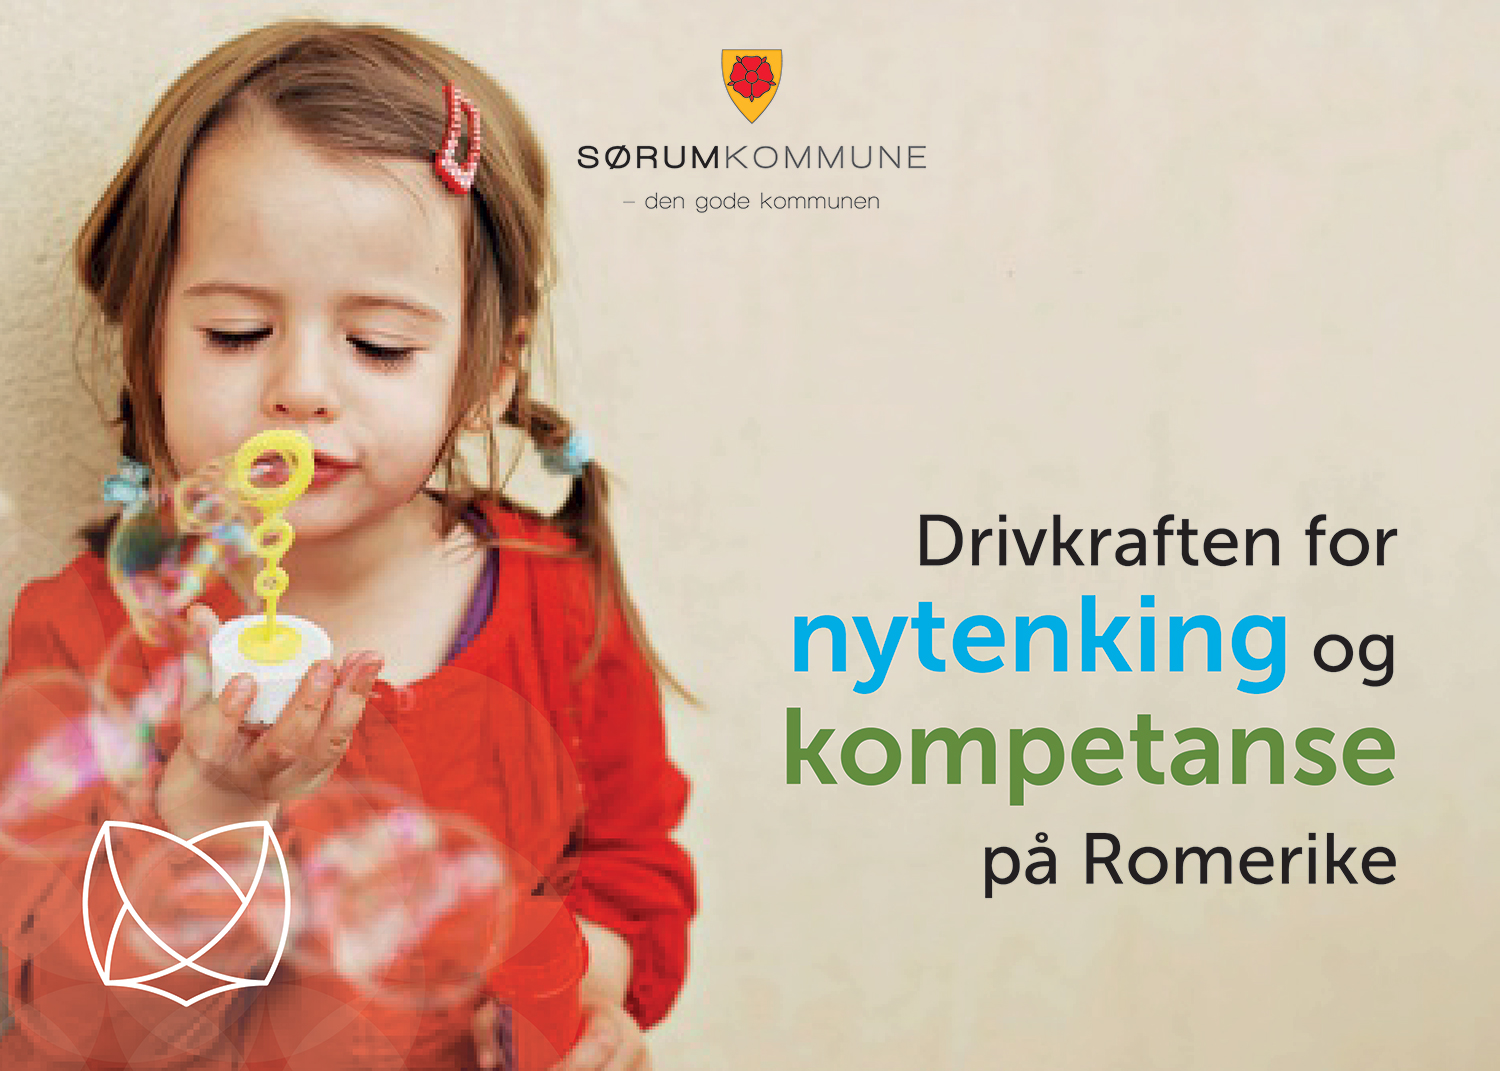 Profilplakat med pay-off Sørum kommune